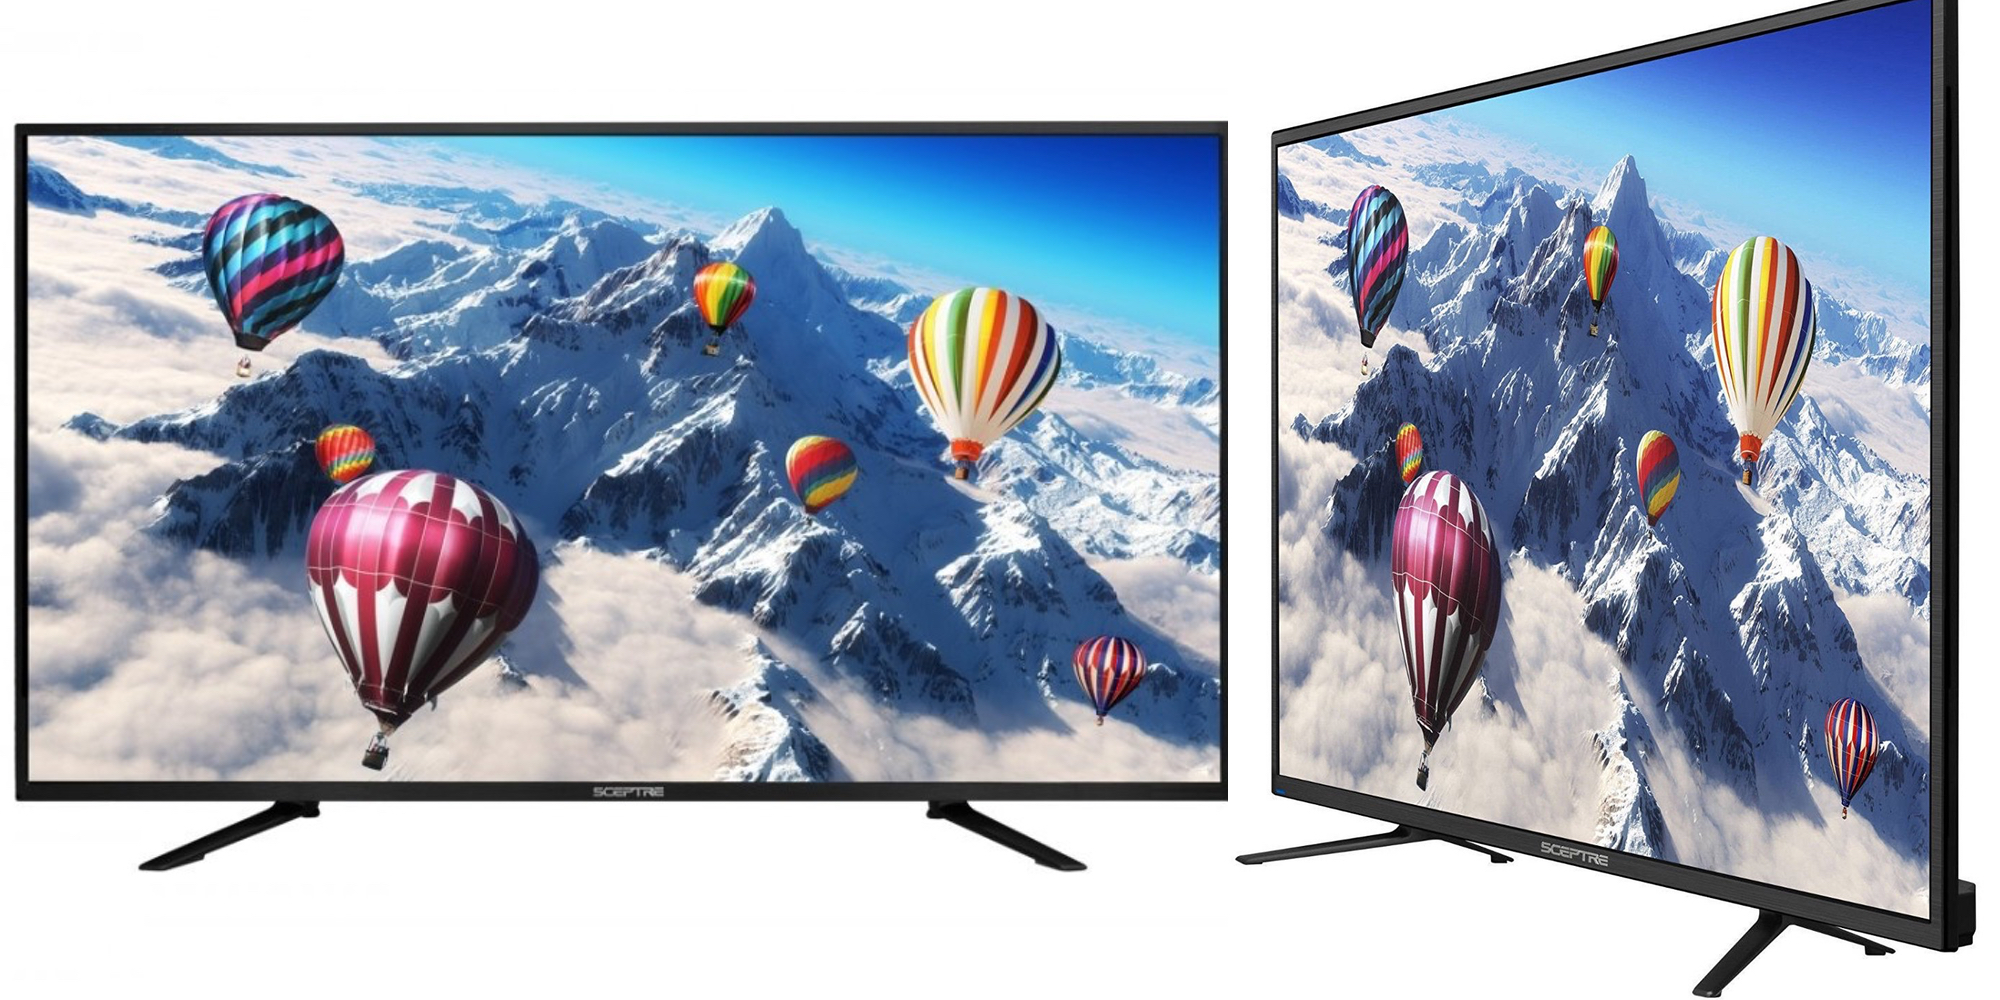 Add a 4K TV to your home theater w/ these sales from $200